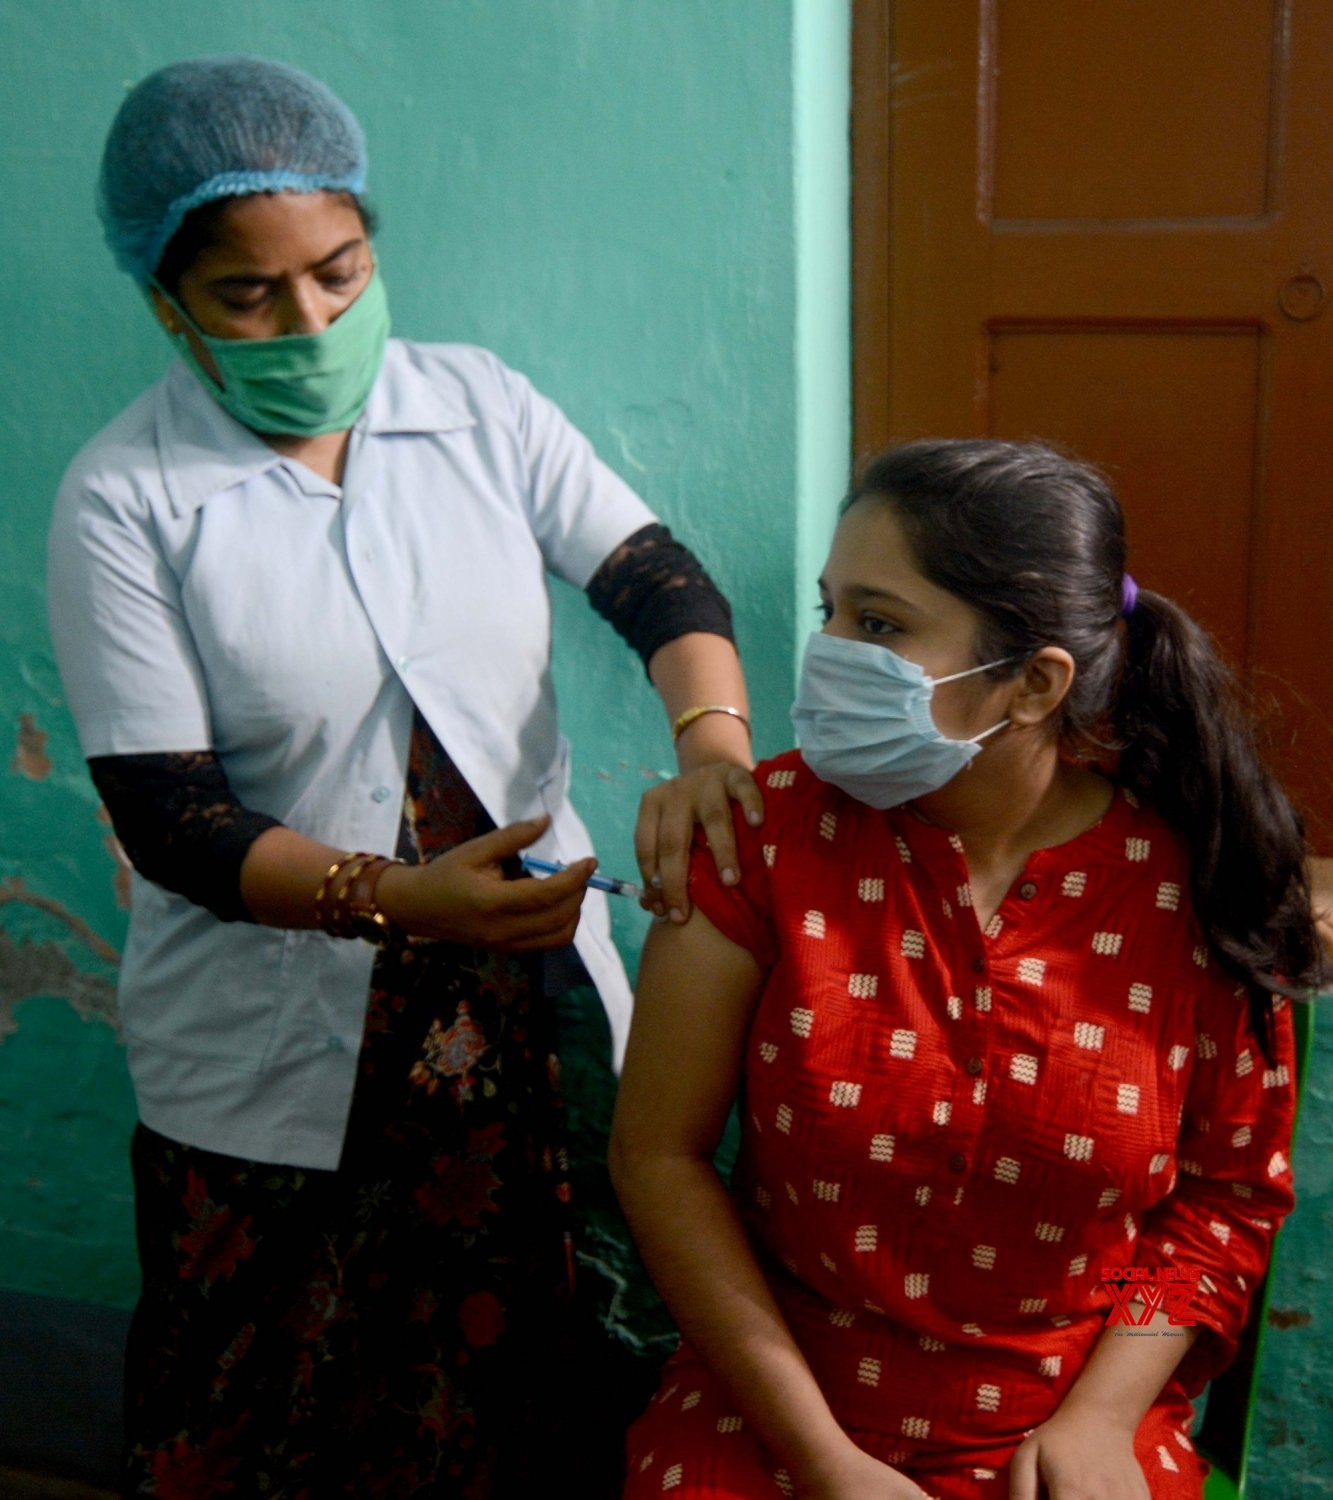 Kolkata: Health workers are giving the vaccine to the local people at Rajarhat Gopalpur area during increasing numbers of COVID 19 cases near in Kolkata. #Gallery